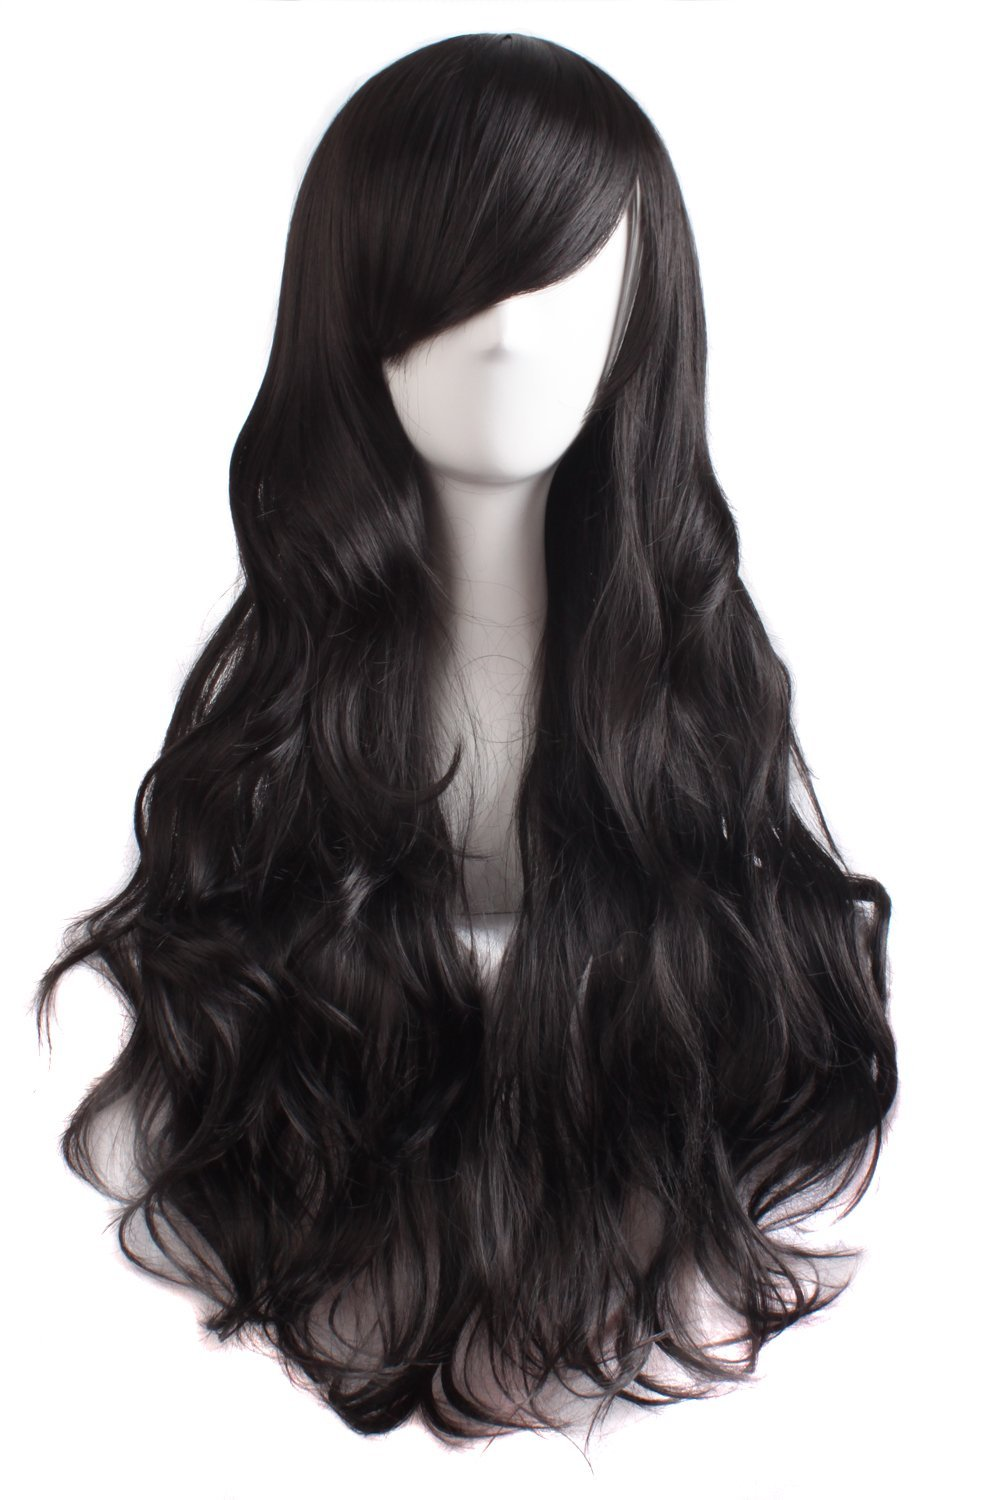 Pema Hair Extensions And Wigs D-DIVINE Full Head Long Wavy Hair Wig for Women